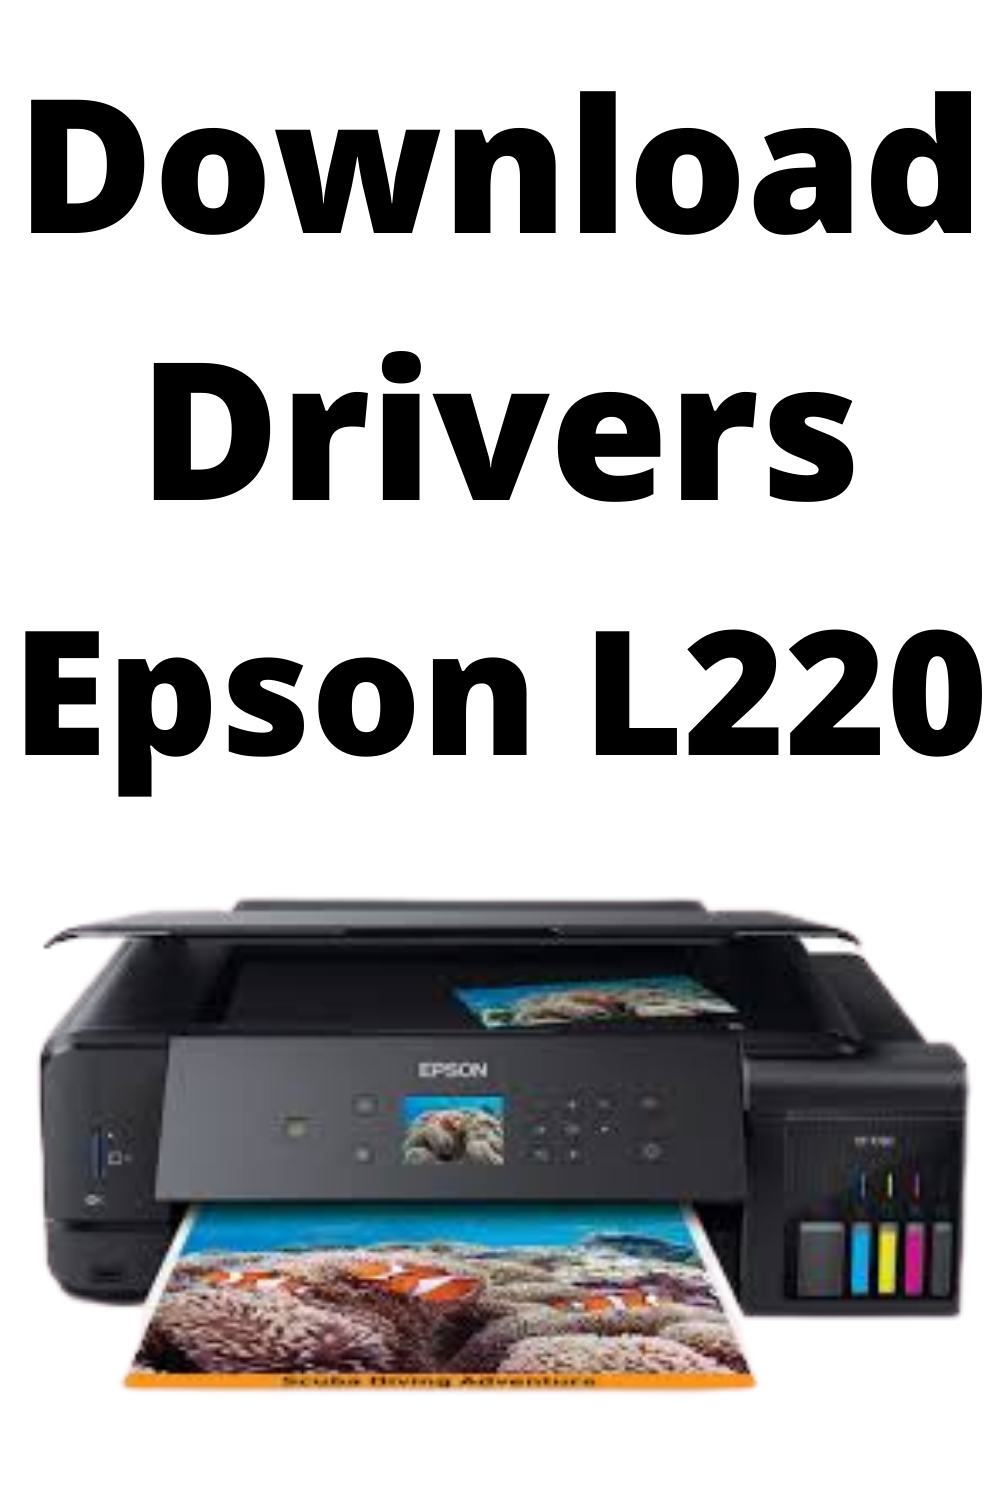 Epson L220 Printer Drivers Free Download With Single Click Printer Driver Epson Printer